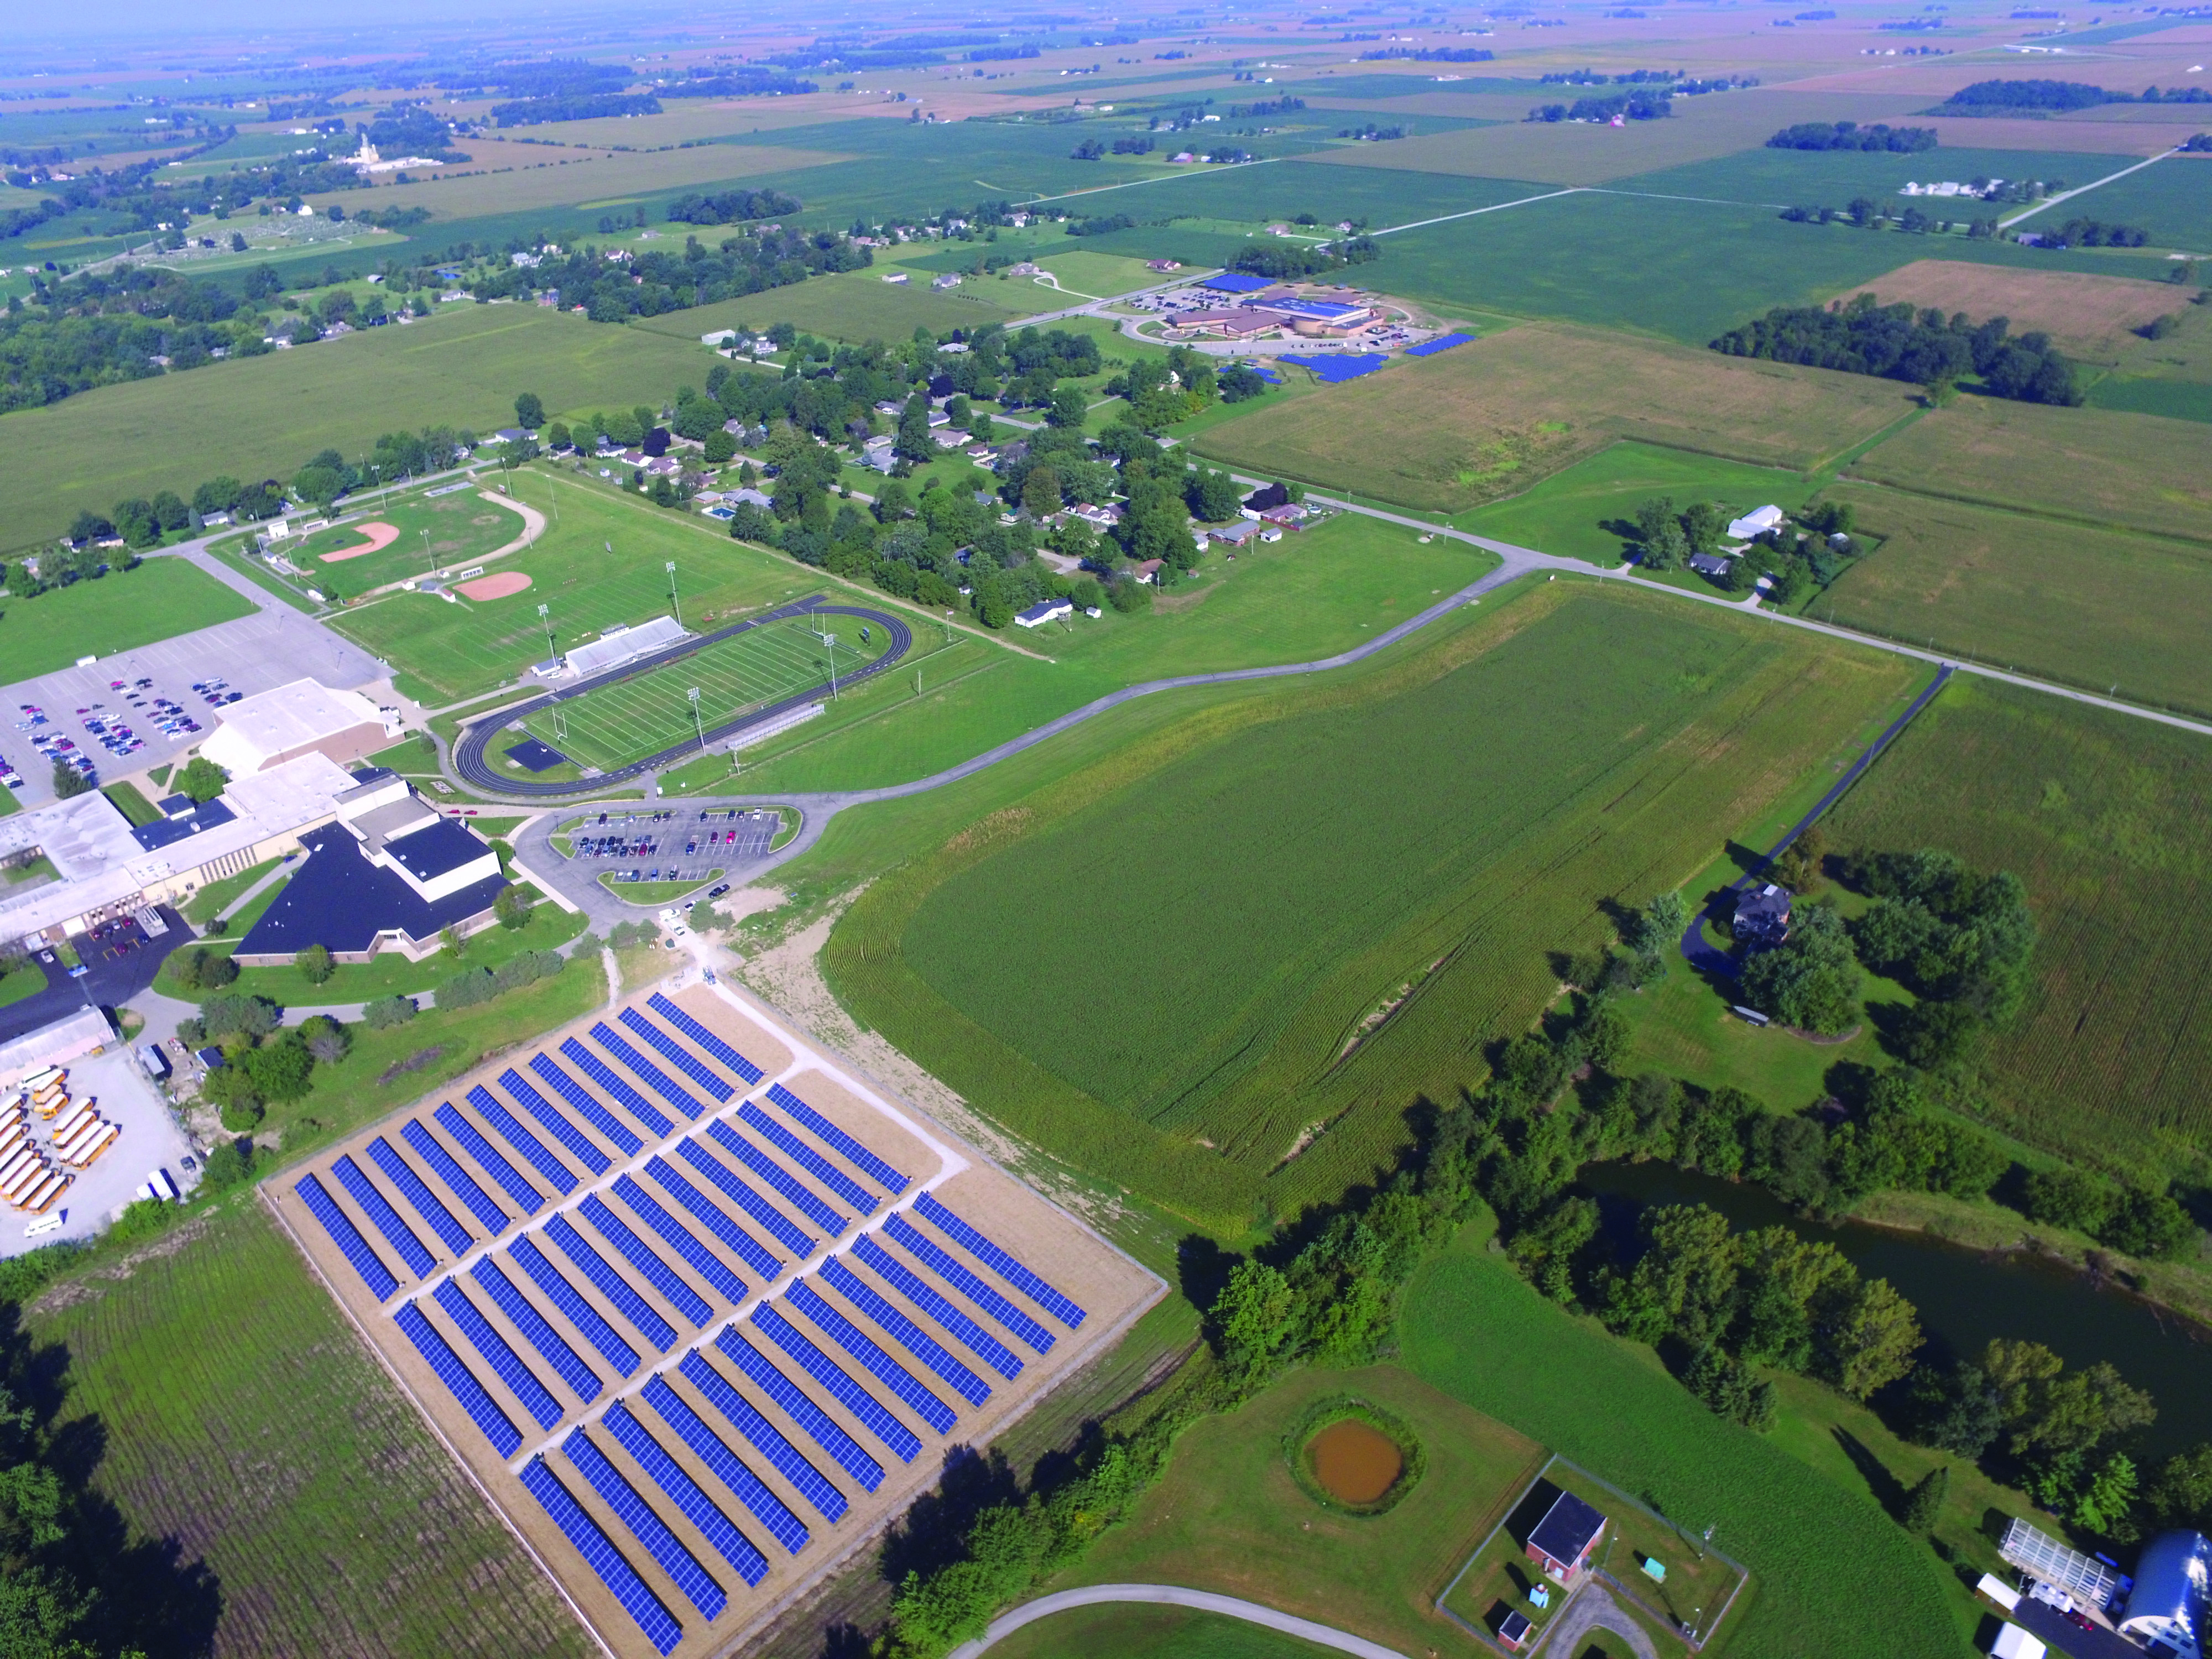 Solar financing for schools can be accomplished in a number of ways. After choosing from a list of solar power financing options, Sheridan School District installed a 1.8-megawatt system that can generate up to 2.2 million kilowatt-hours of power annually.